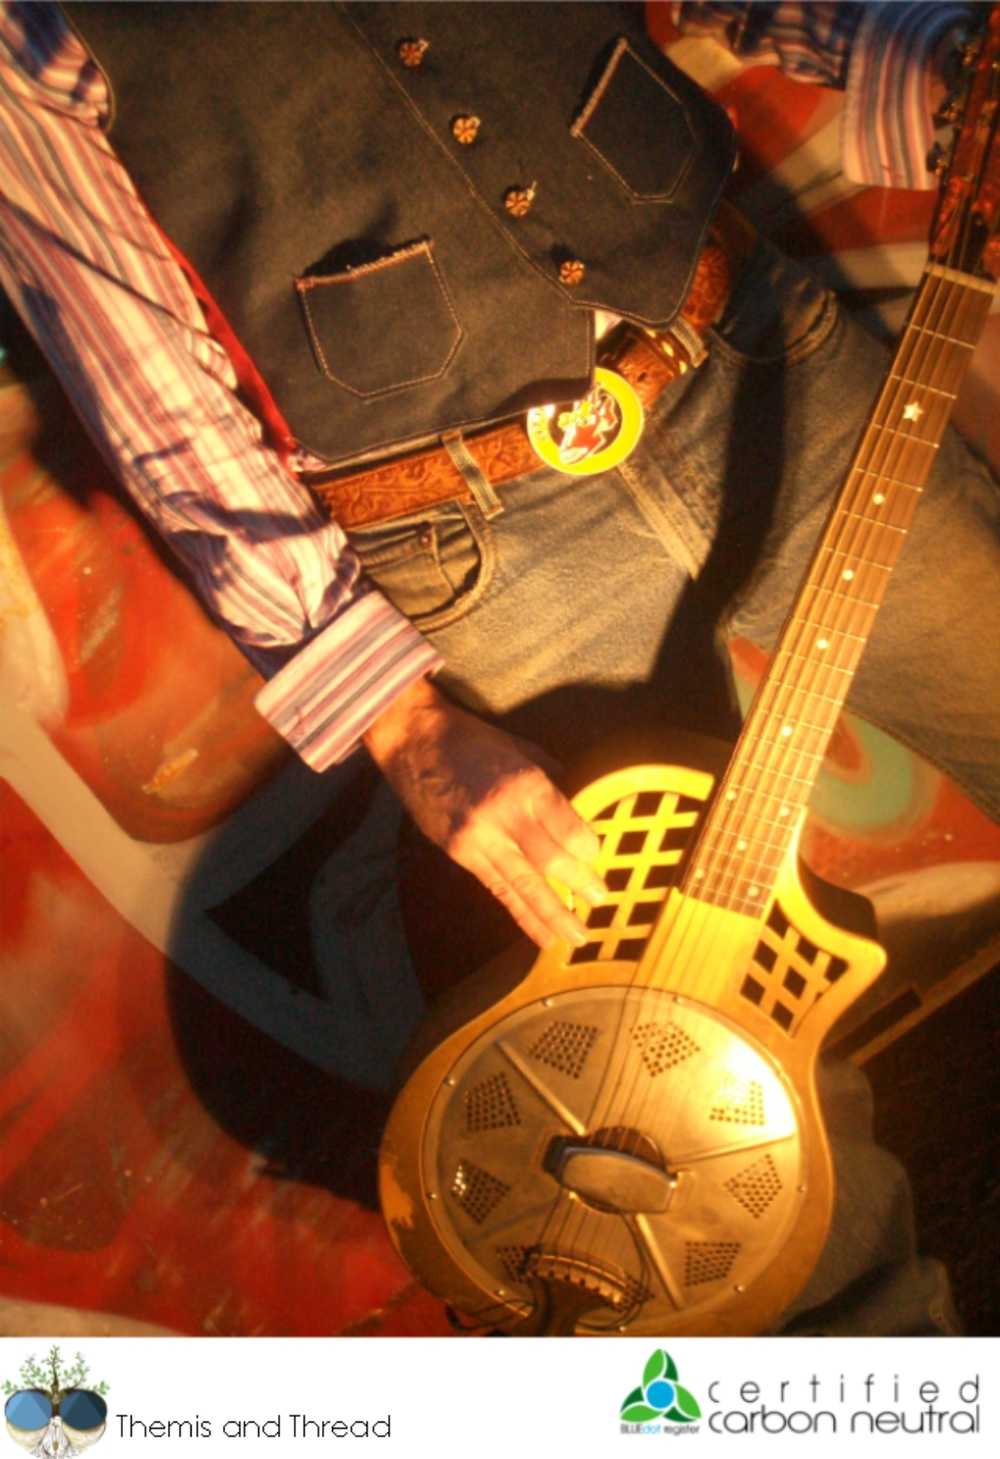 Themis Guitar with logos.jpg